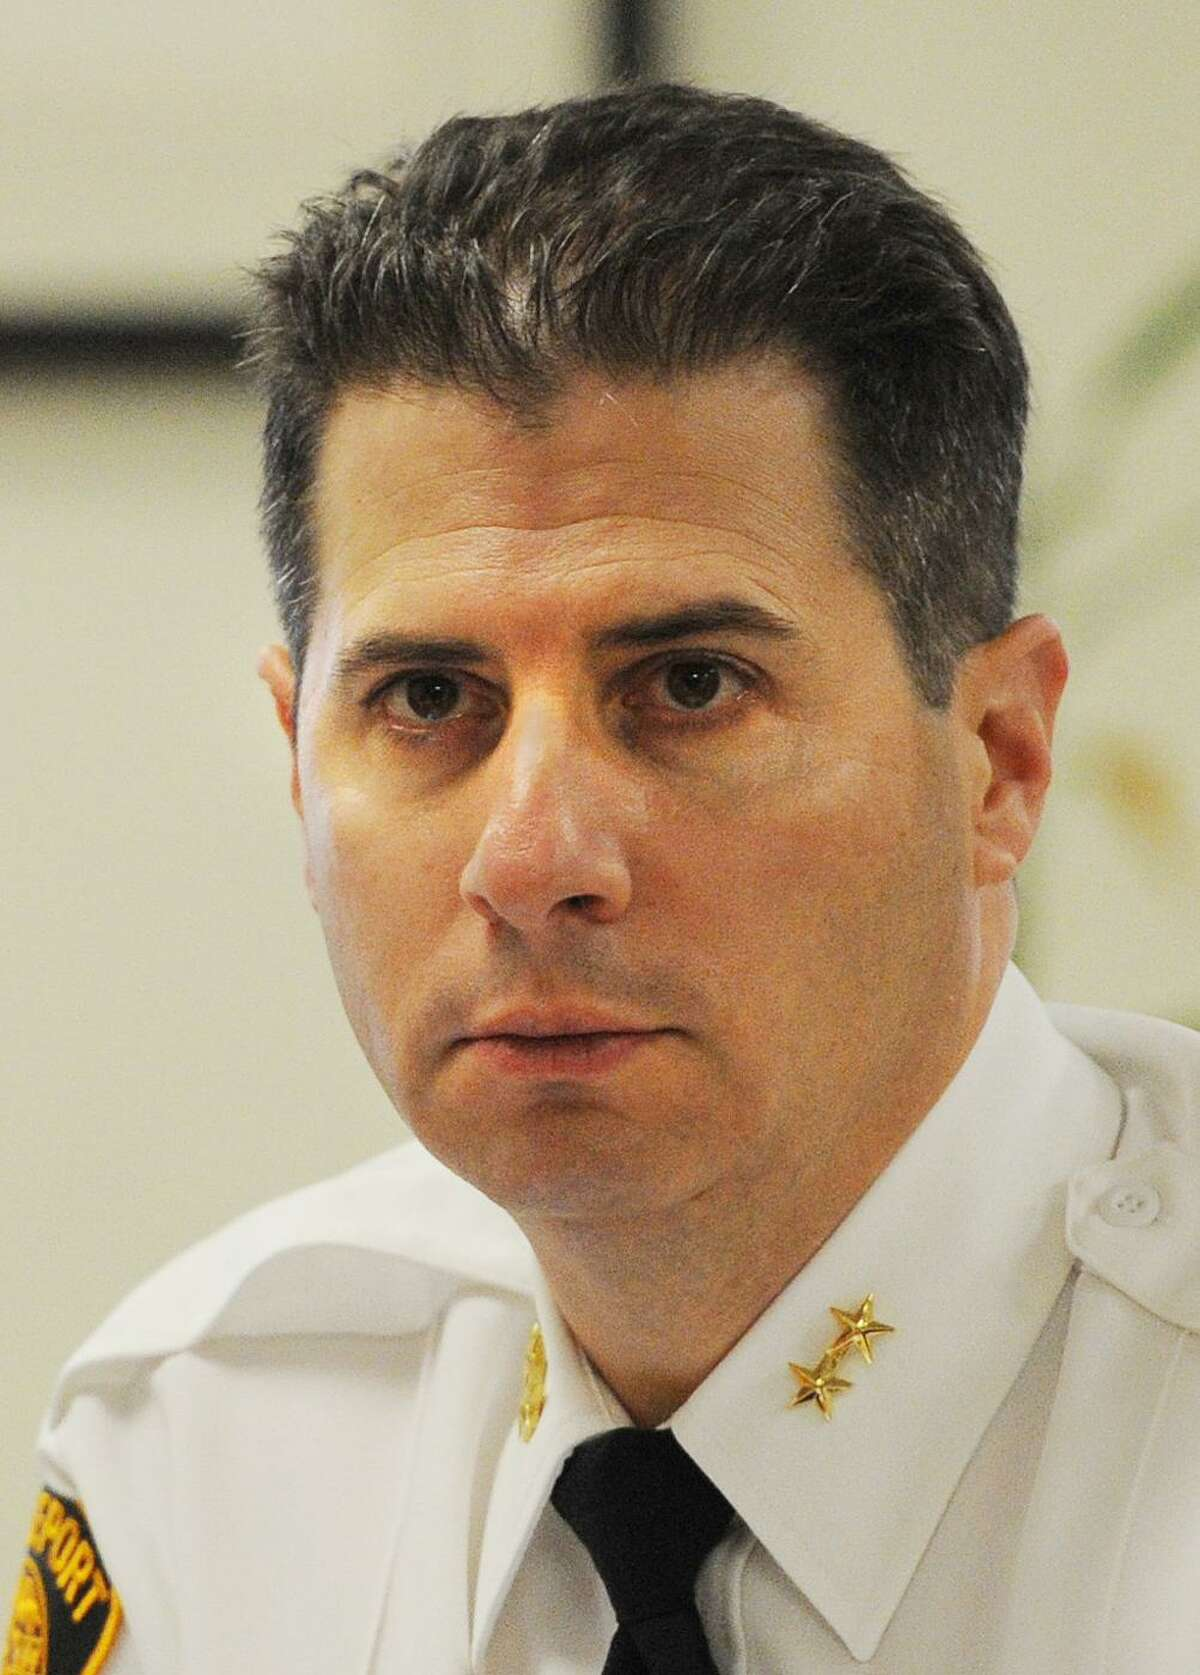 Former Bridgeport Police Assistant Chief James Nardozzi confirms he applied for the job to be Bridgeport's police chief.